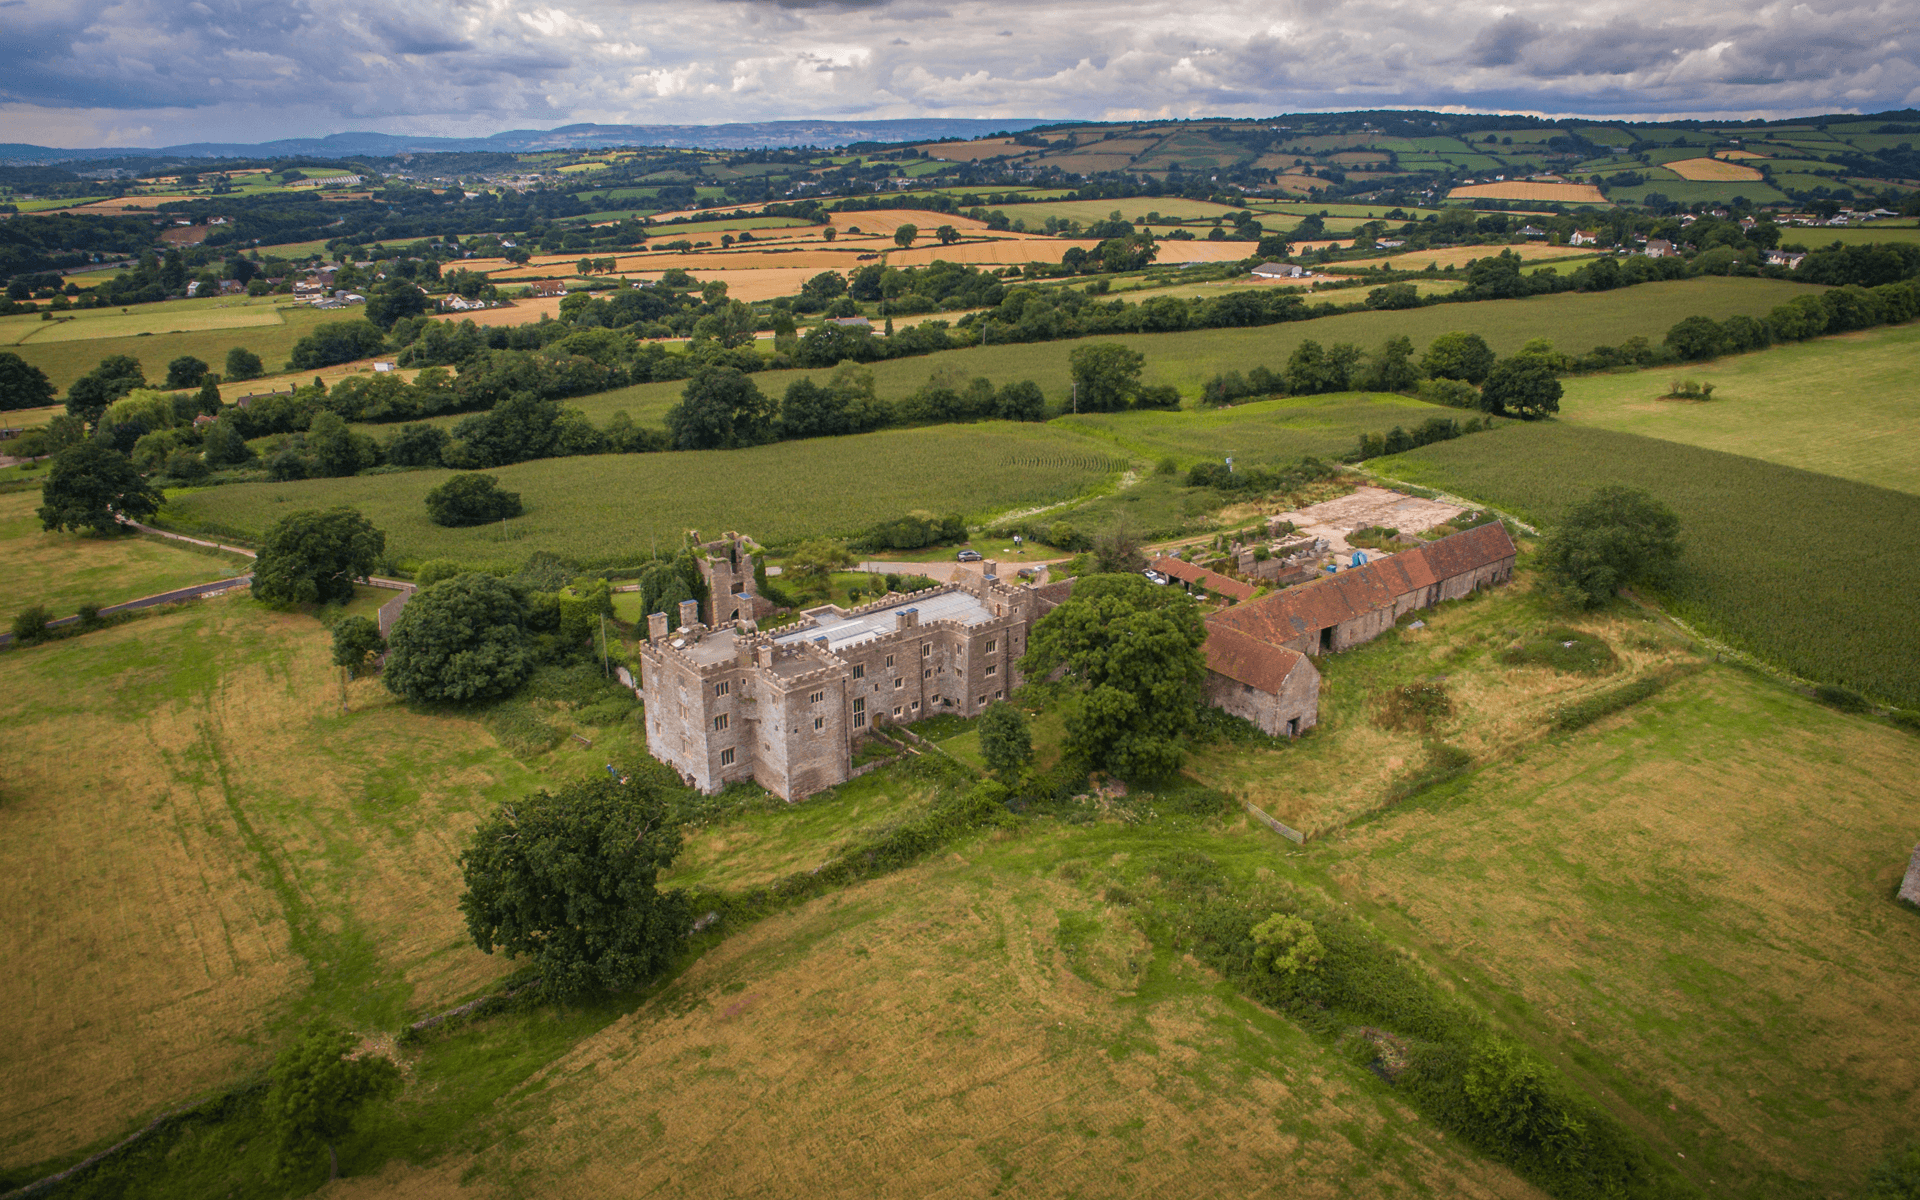 """DJI Inspire 1"" aerial drone photo of Pencoed Castle in Wales"